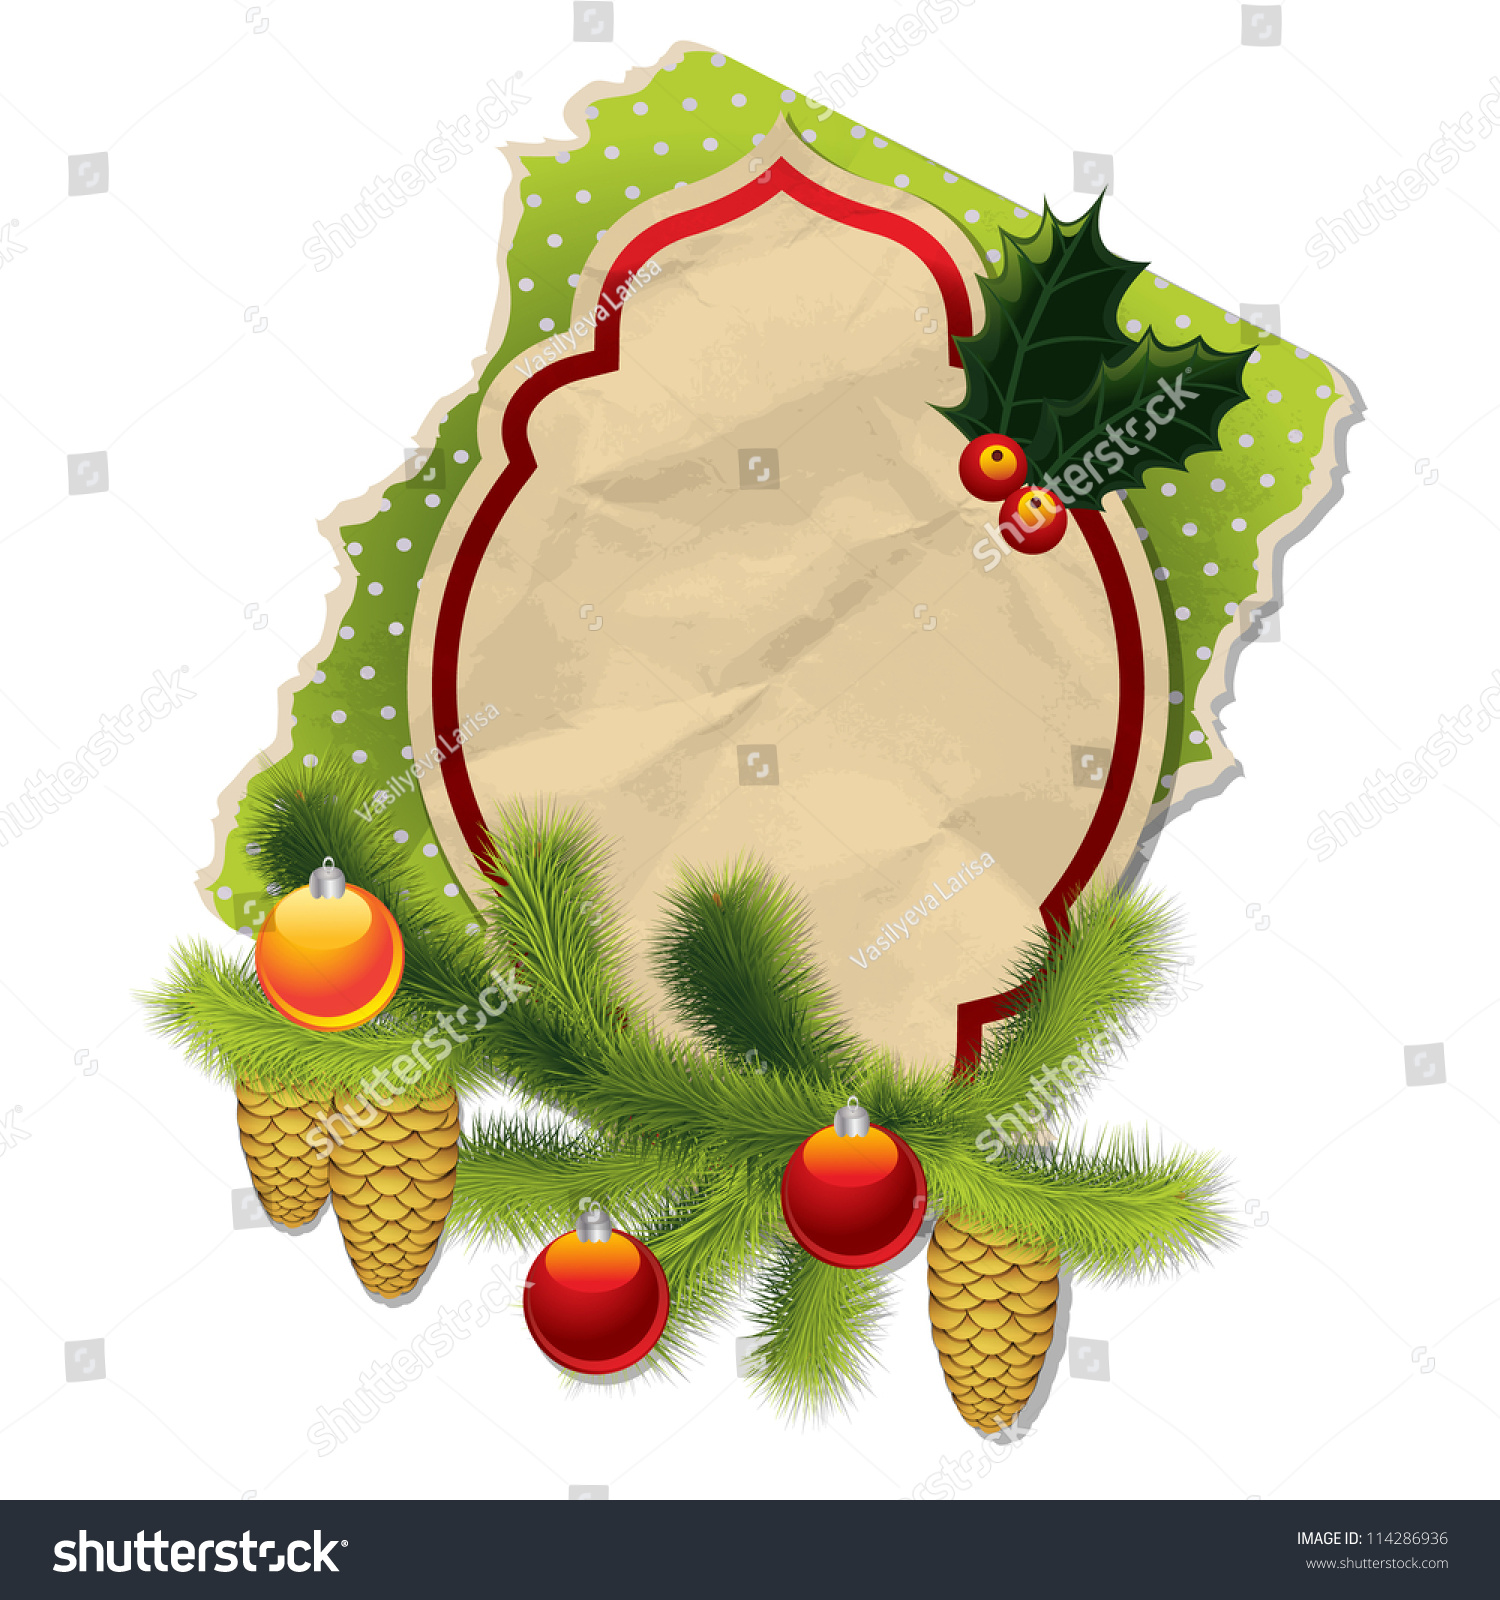 Christmas background vintage paper label fur stock vector for Fir cone christmas tree decorations